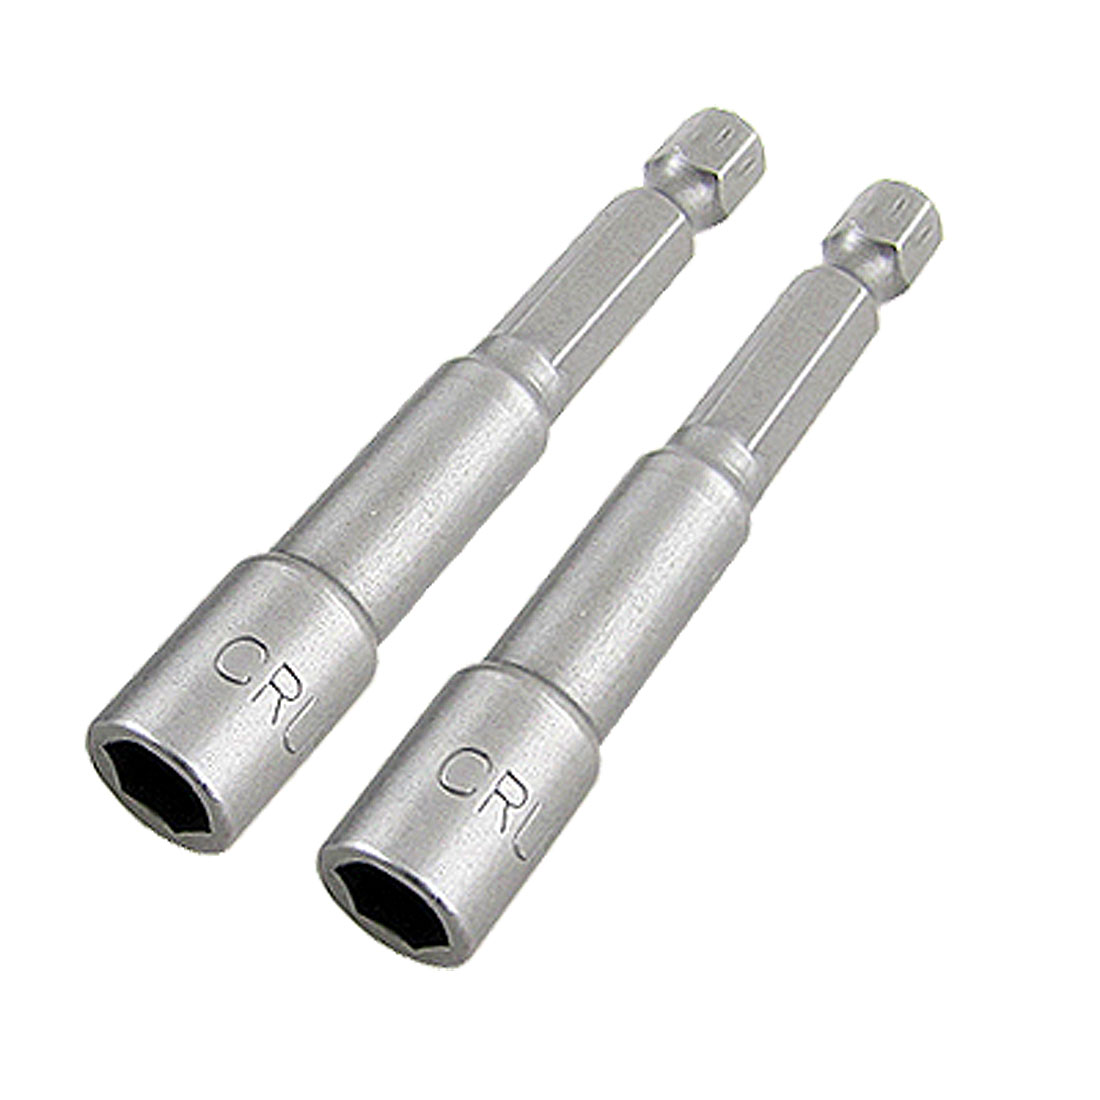 "1/4"" Shank 7mm Hexagon Socket Spanner Hex Nut Driver Bit 2Pcs"